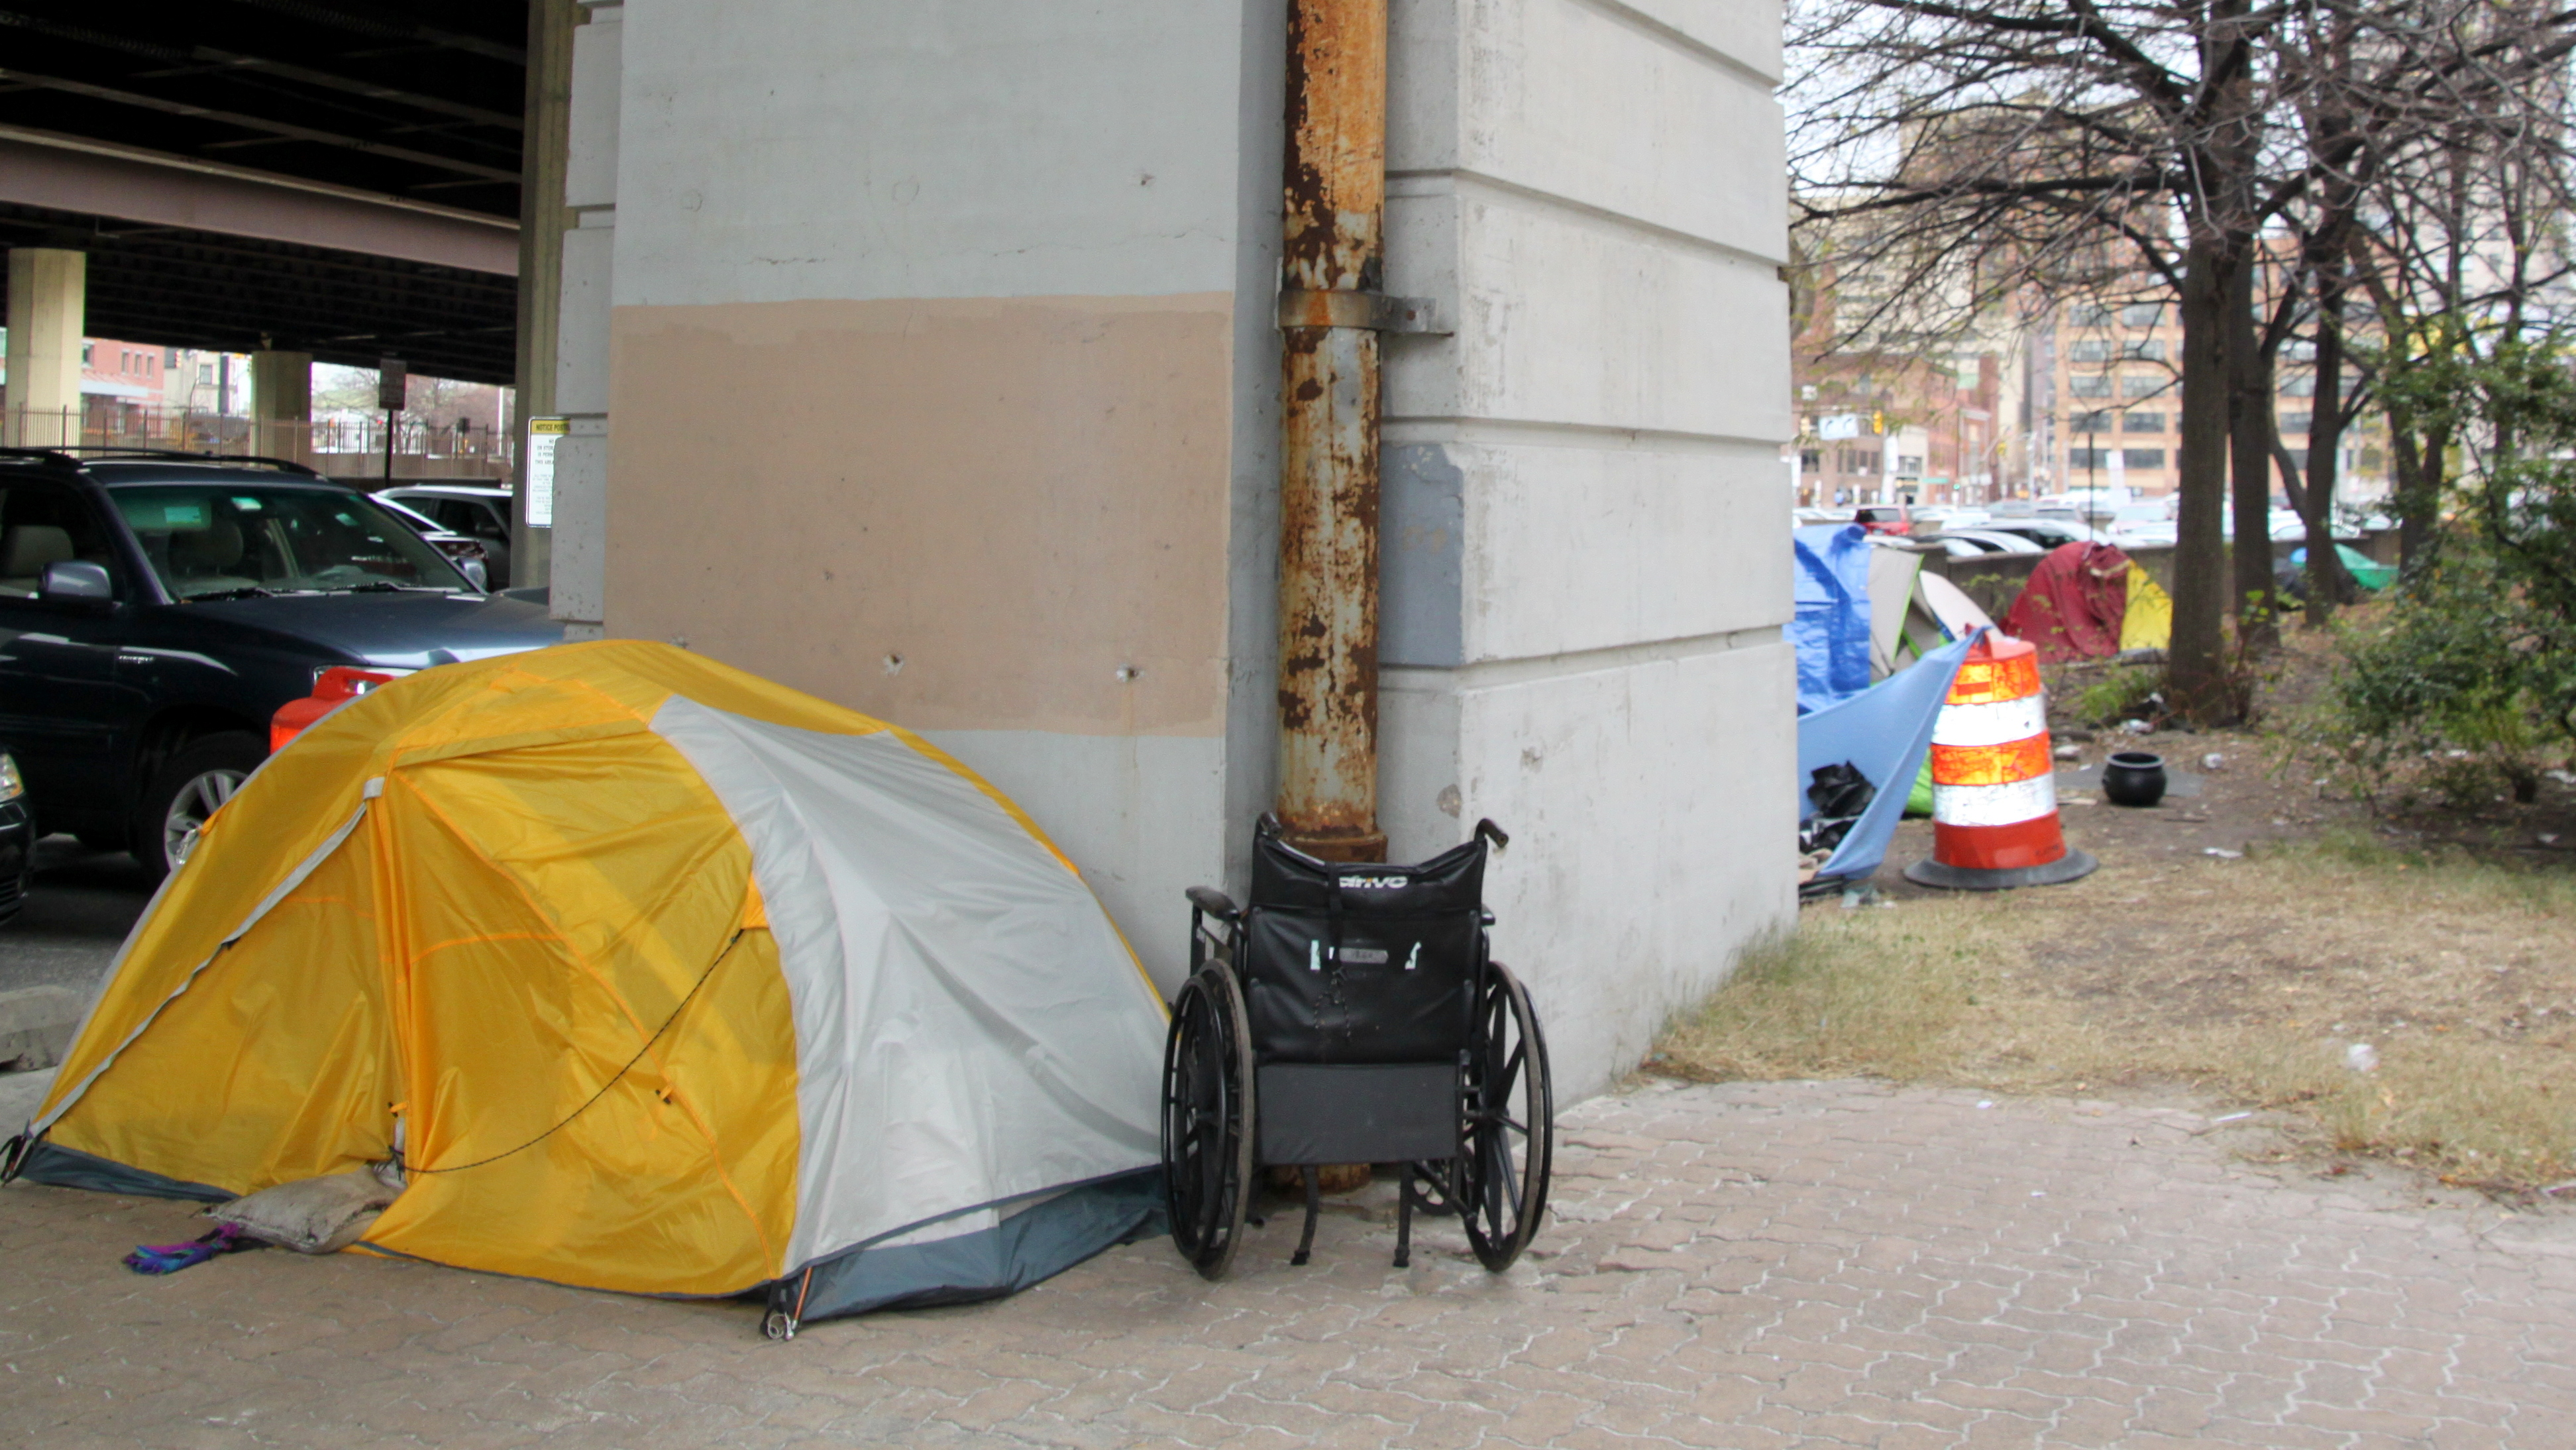 Tents where people sleep along Guilford Avenue, near Baltimore City Hall. (Fern Shen)